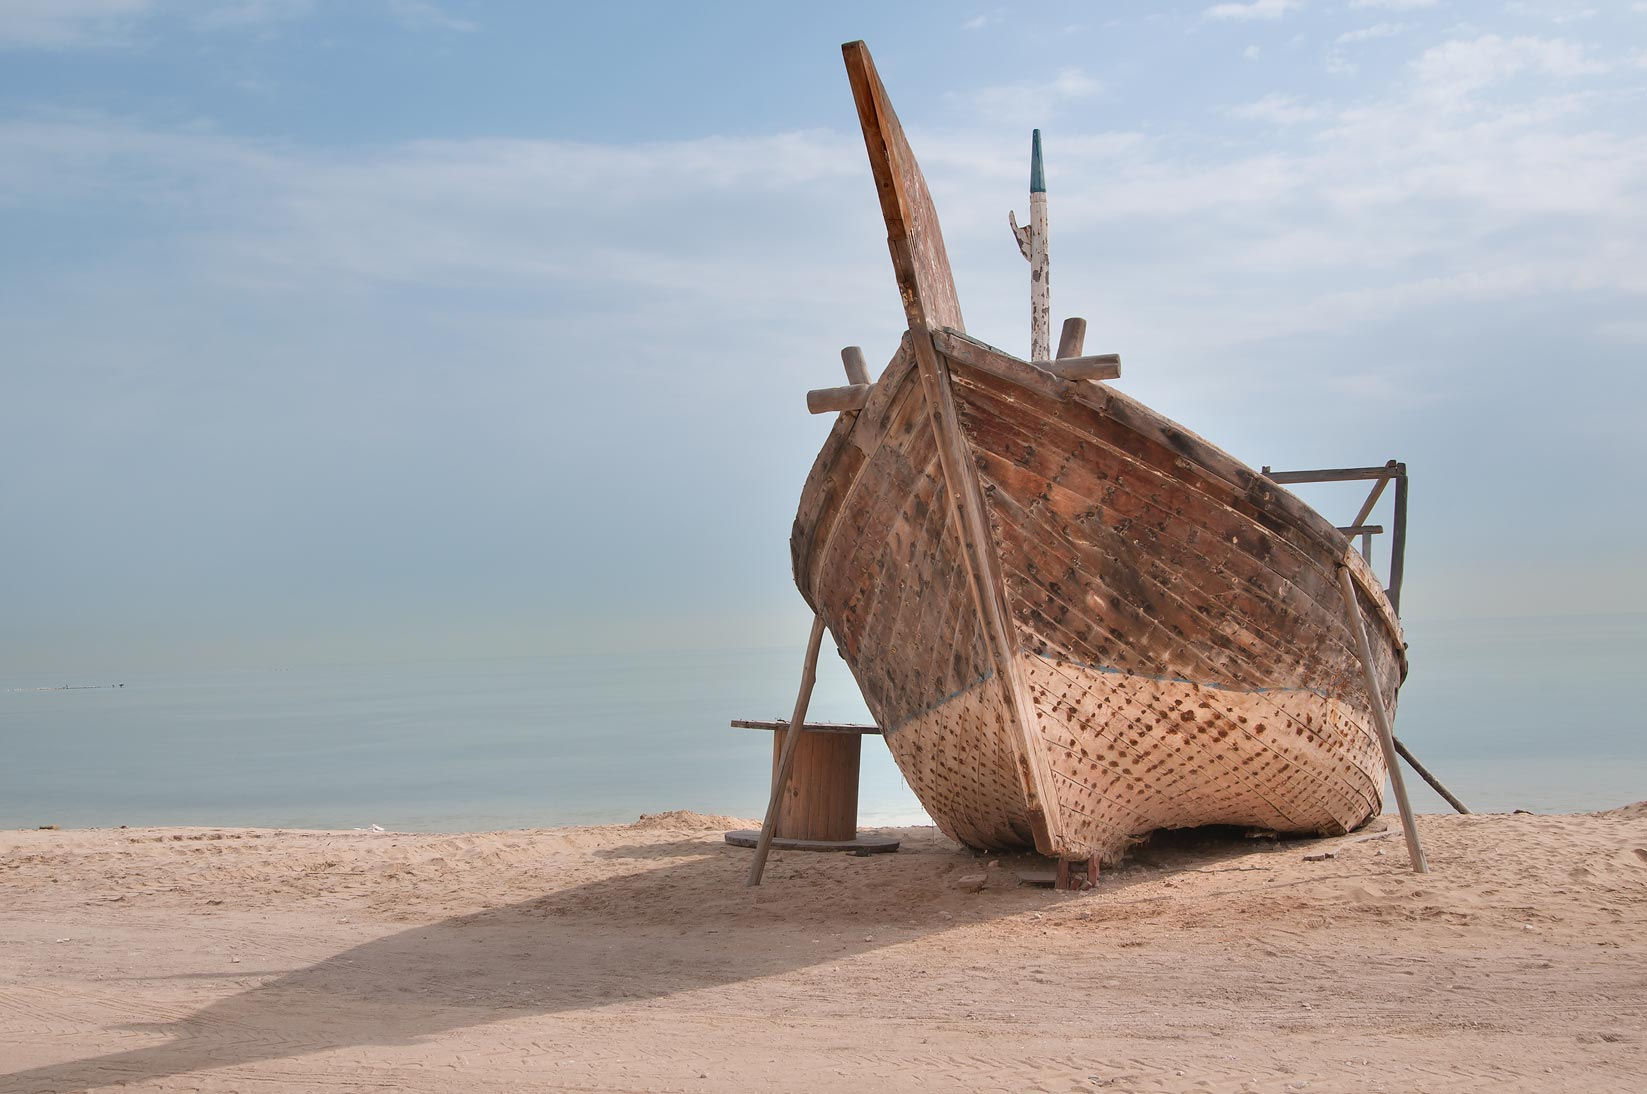 Beached dhow fishing wooden boat. Al Wakrah, Qatar